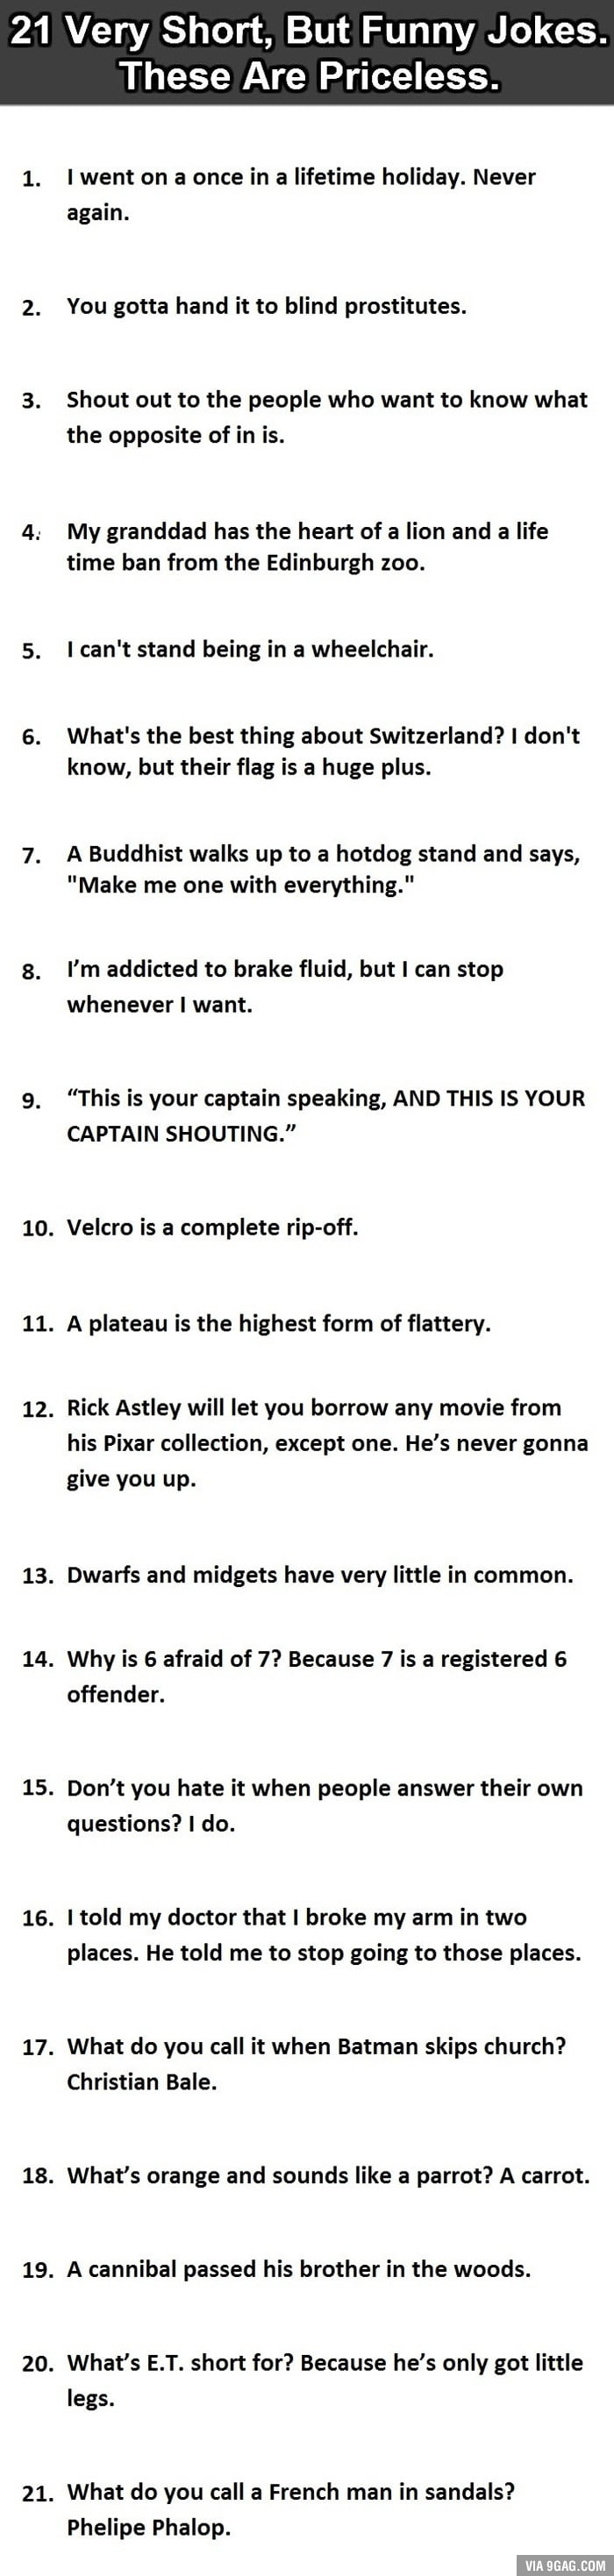 Funny Quotes Quotes And Jokes On Pinterest: 21 Very Short, But Funny Jokes. #12 Is Perfect.